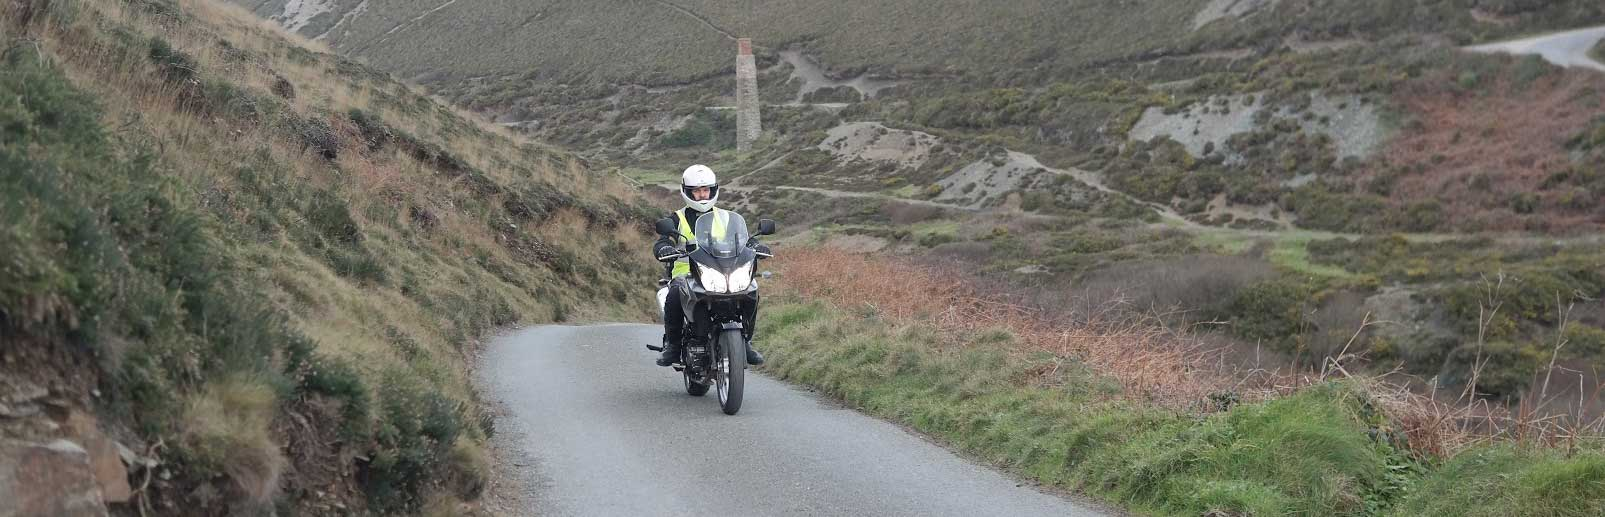 Motorcycle training in the Newquay Area